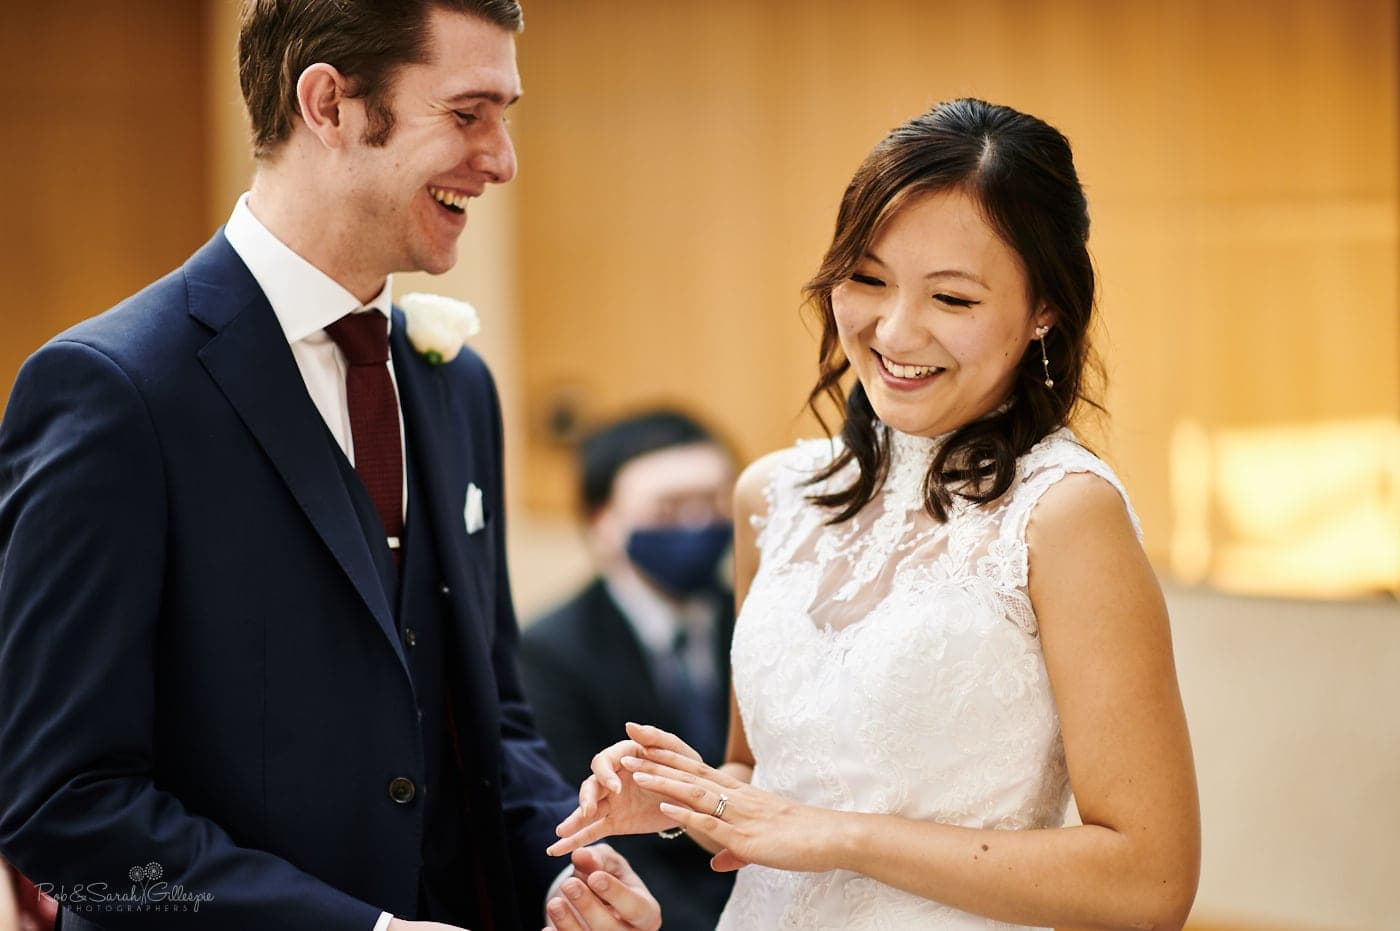 Bride and groom laughing during covid wedding ceremony at Mallory Court